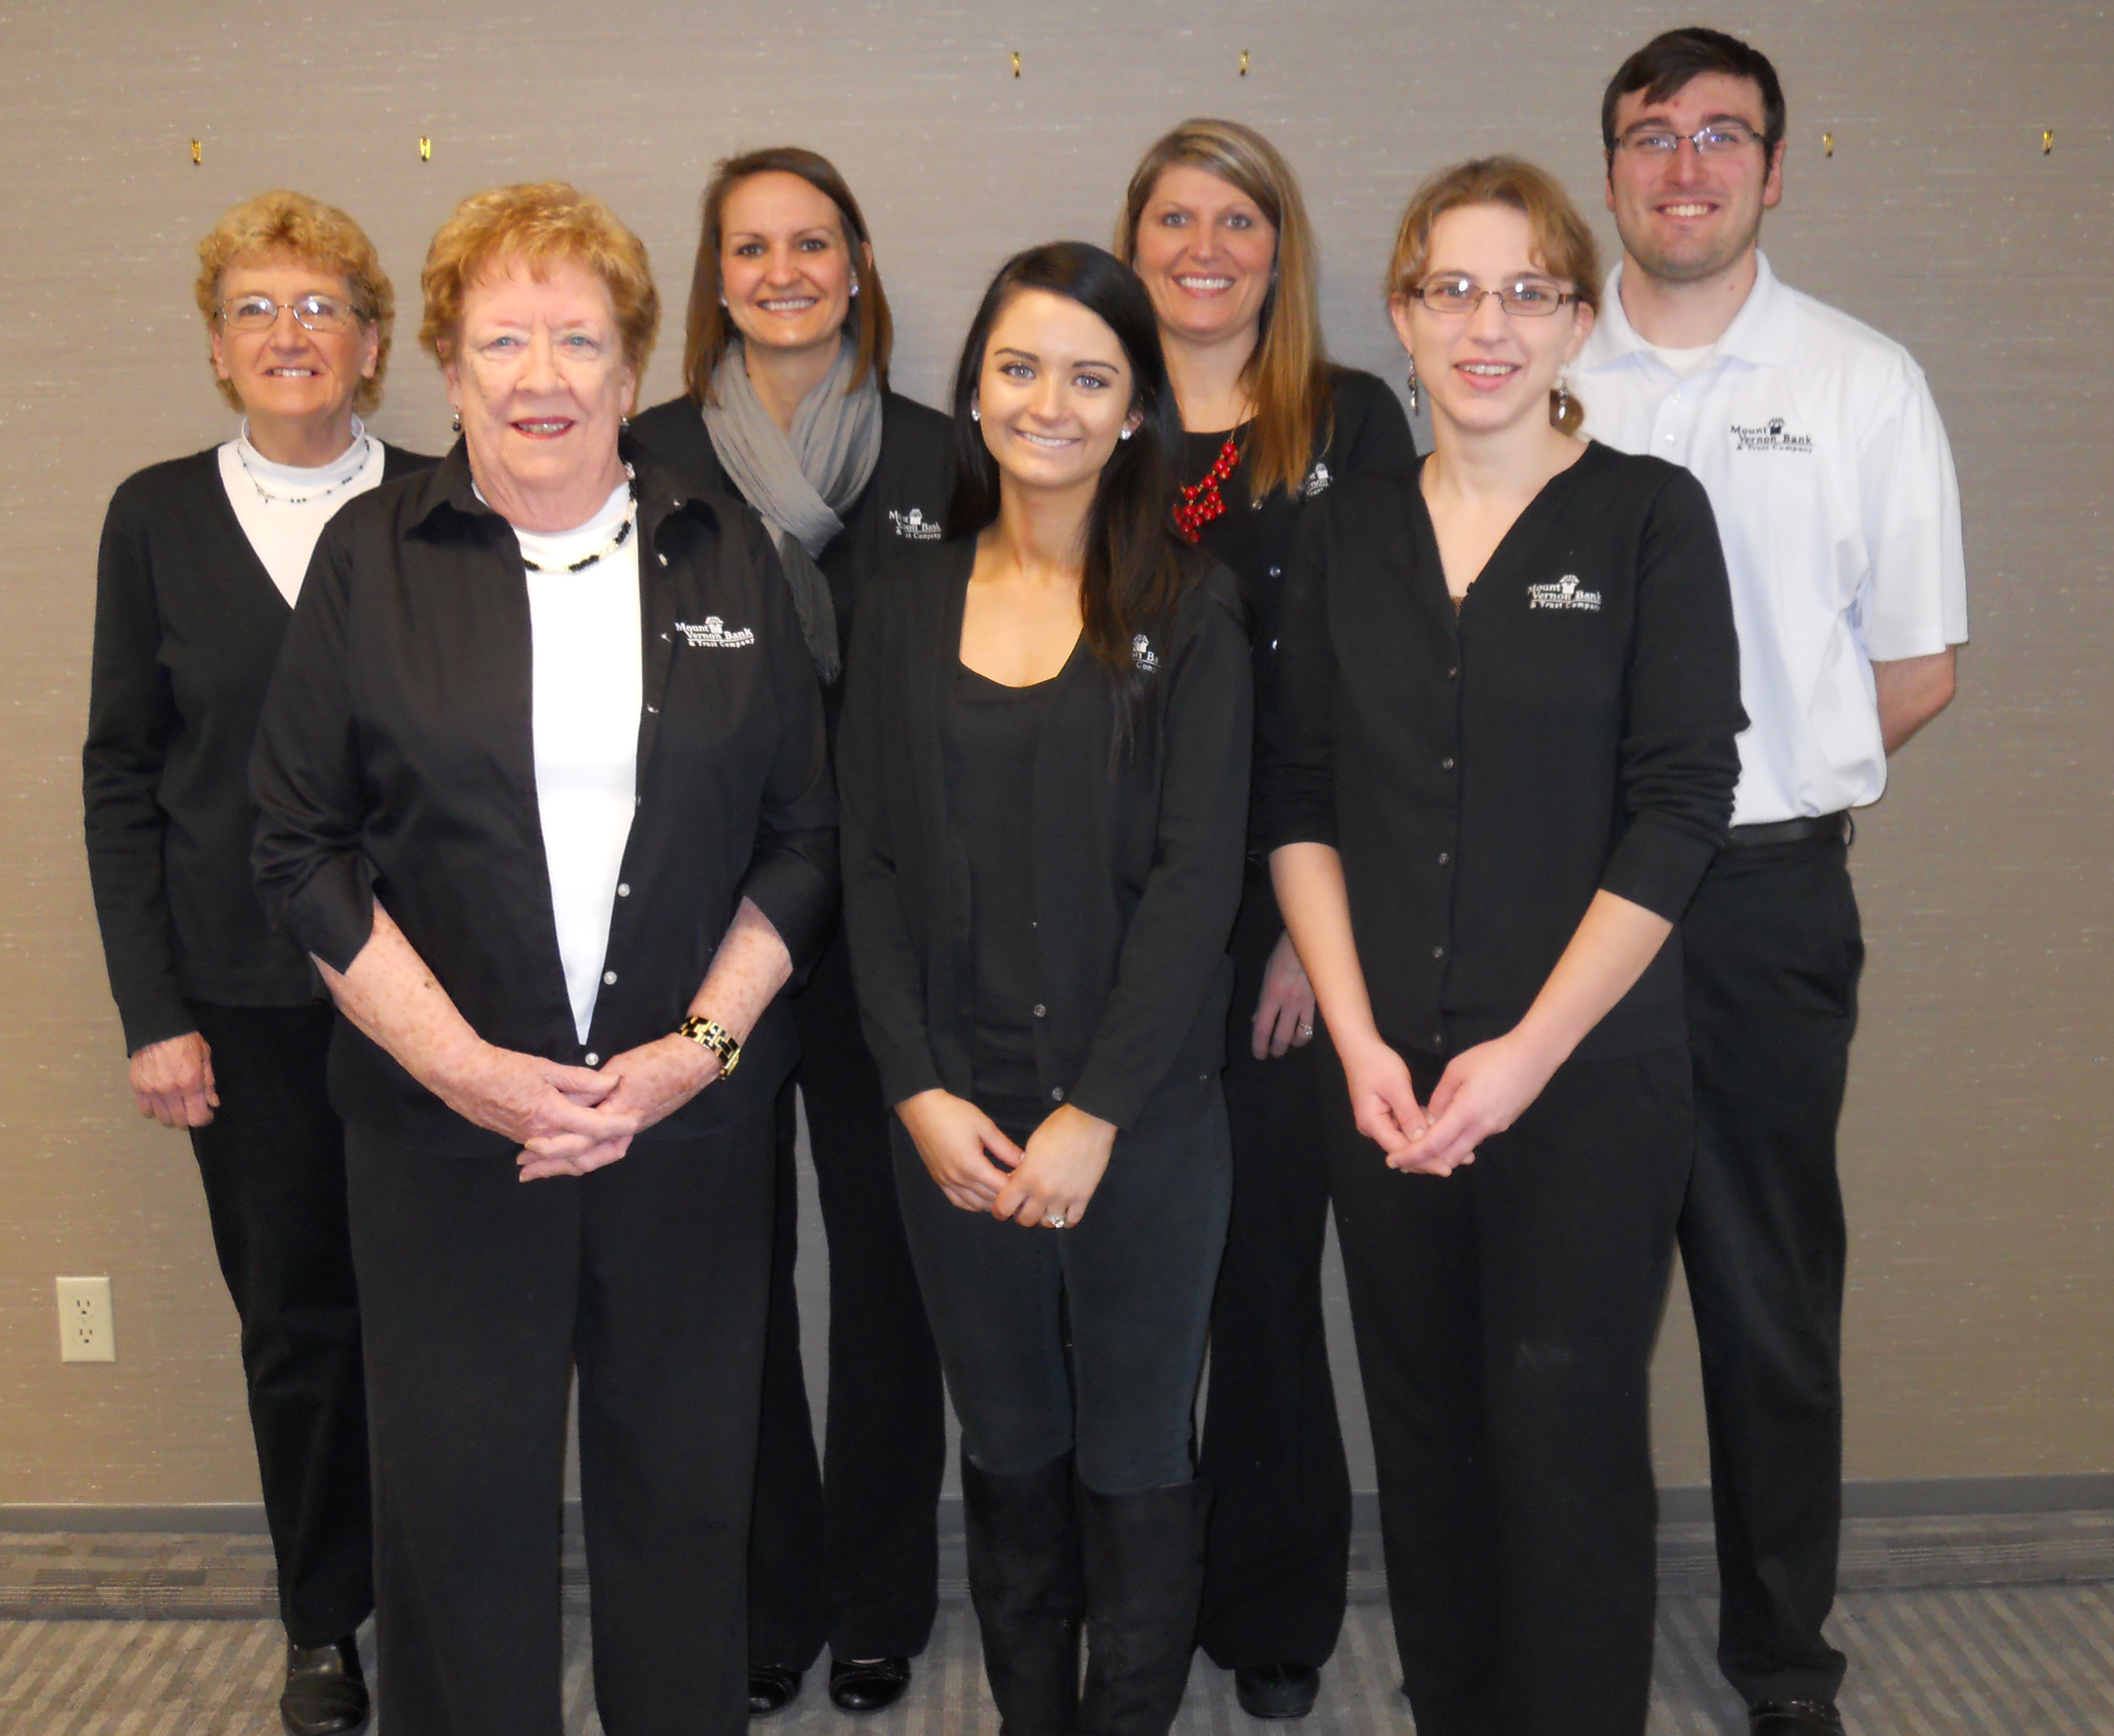 Tellers: Back row-Kathy Dix, Amber Scheil, Melissa Kahl, Roman Myers,  Front row- Jan White, Michele Thomsen, Laura Strabala